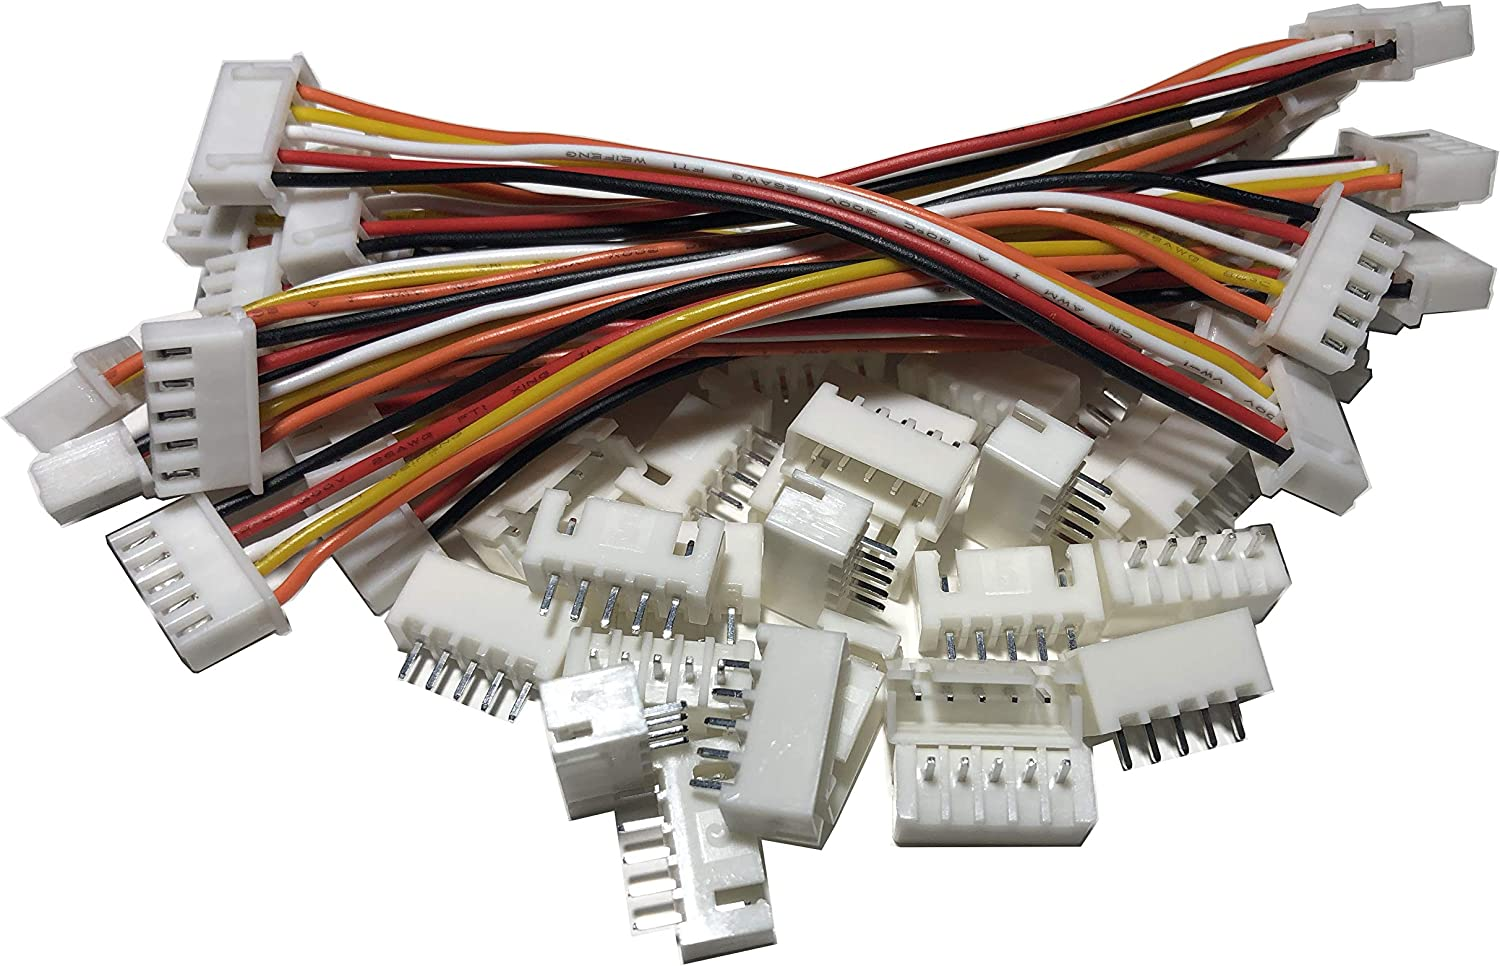 LATTECH 10 Sets JST XH 2.54MM 6 Pin Female /& Female Double Connector with Flat Cable 200MM